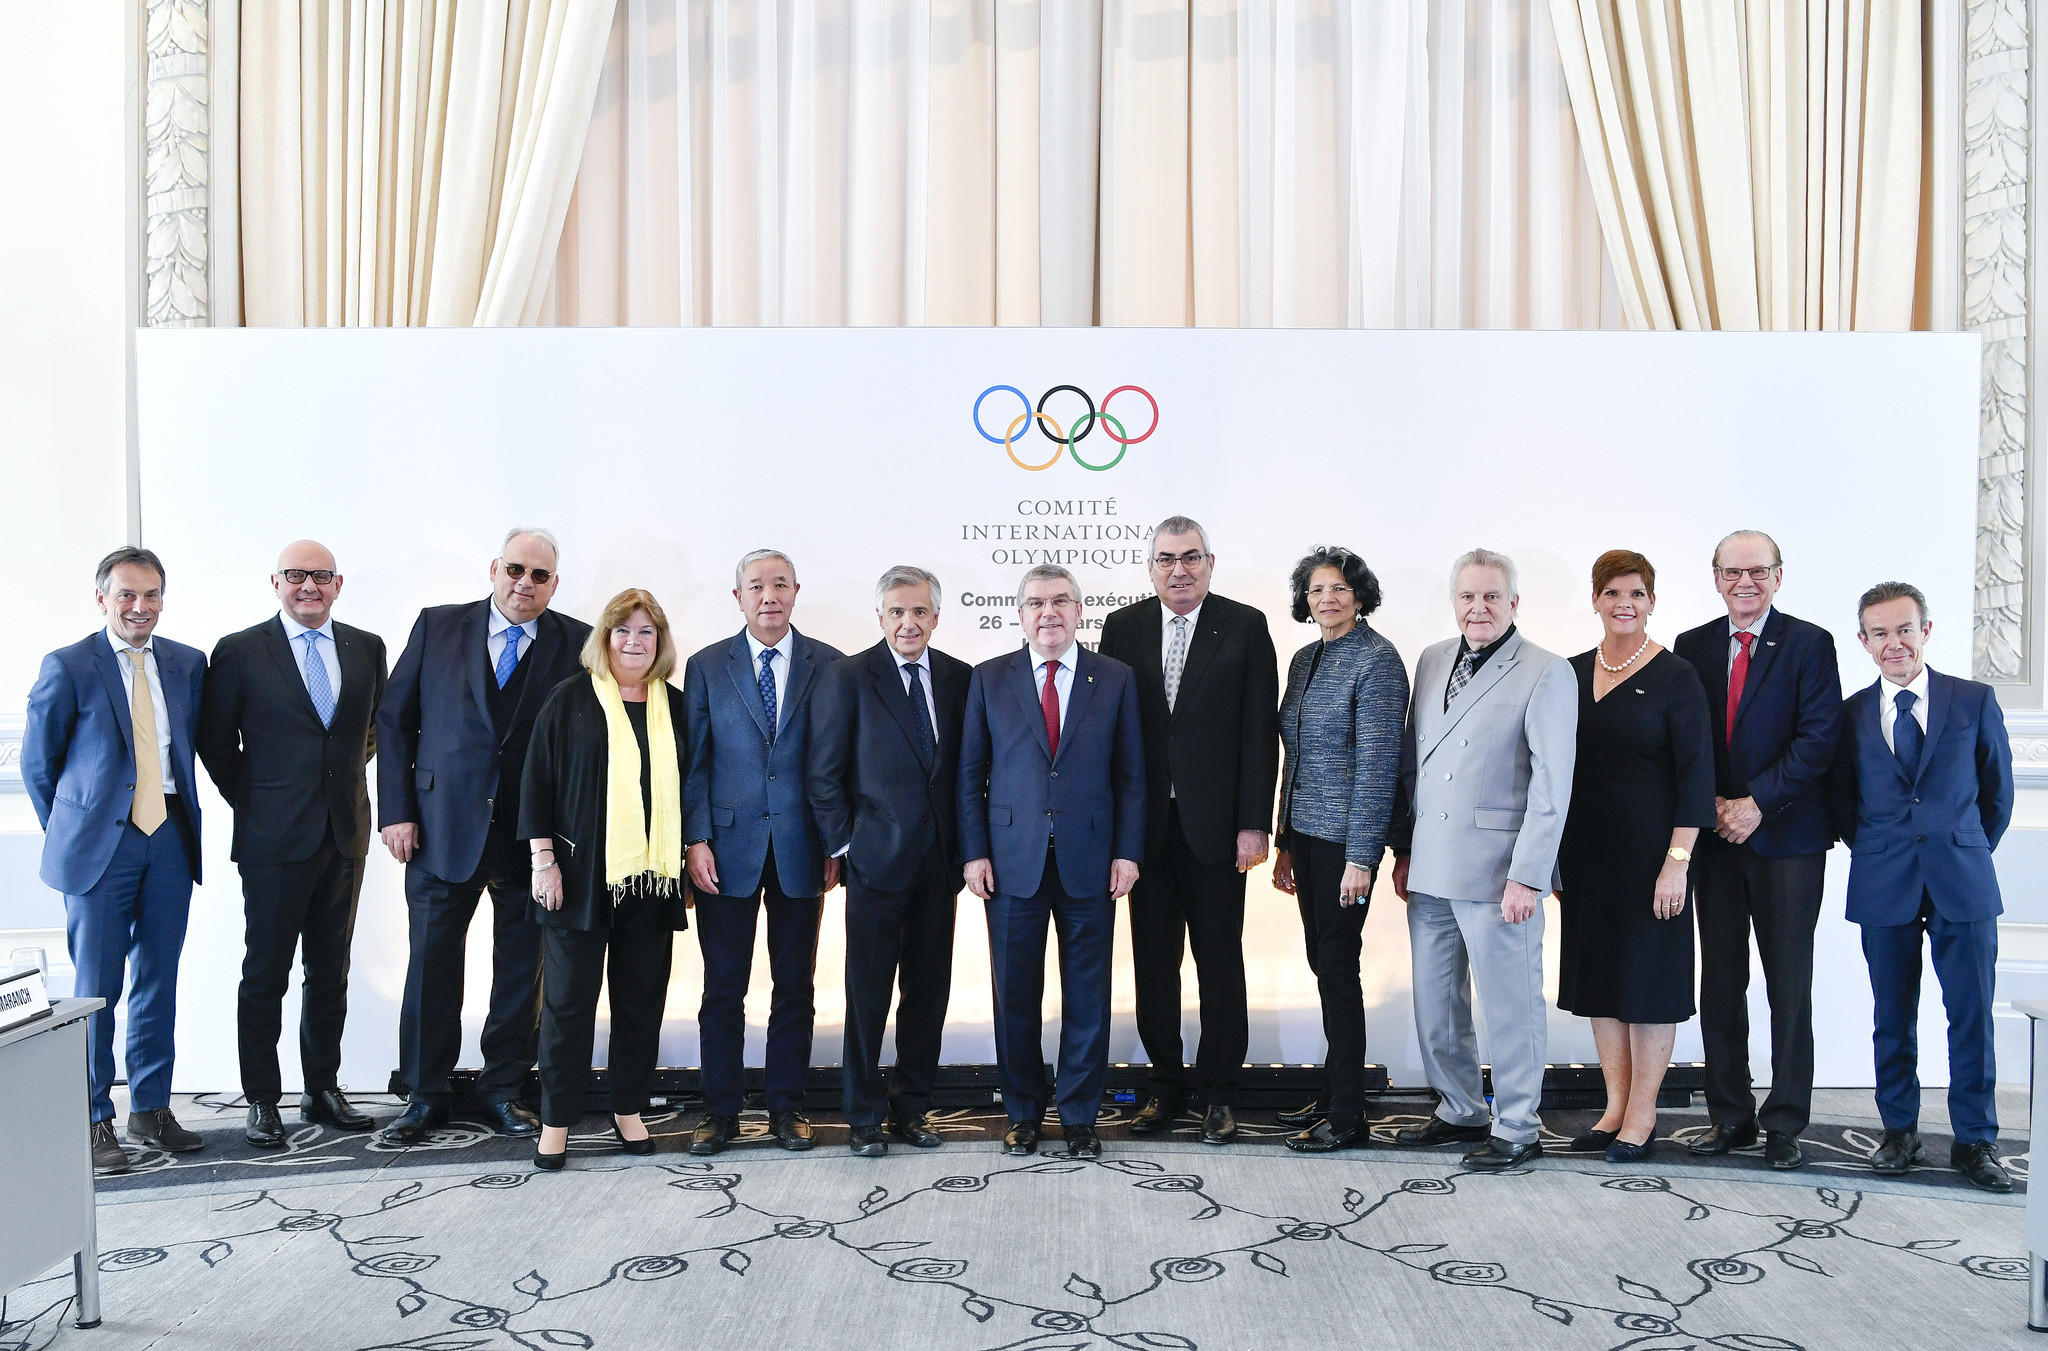 The IOC Executive Board will be presented with the full report from the Inquiry Committee into AIBA on May 22 ©IOC